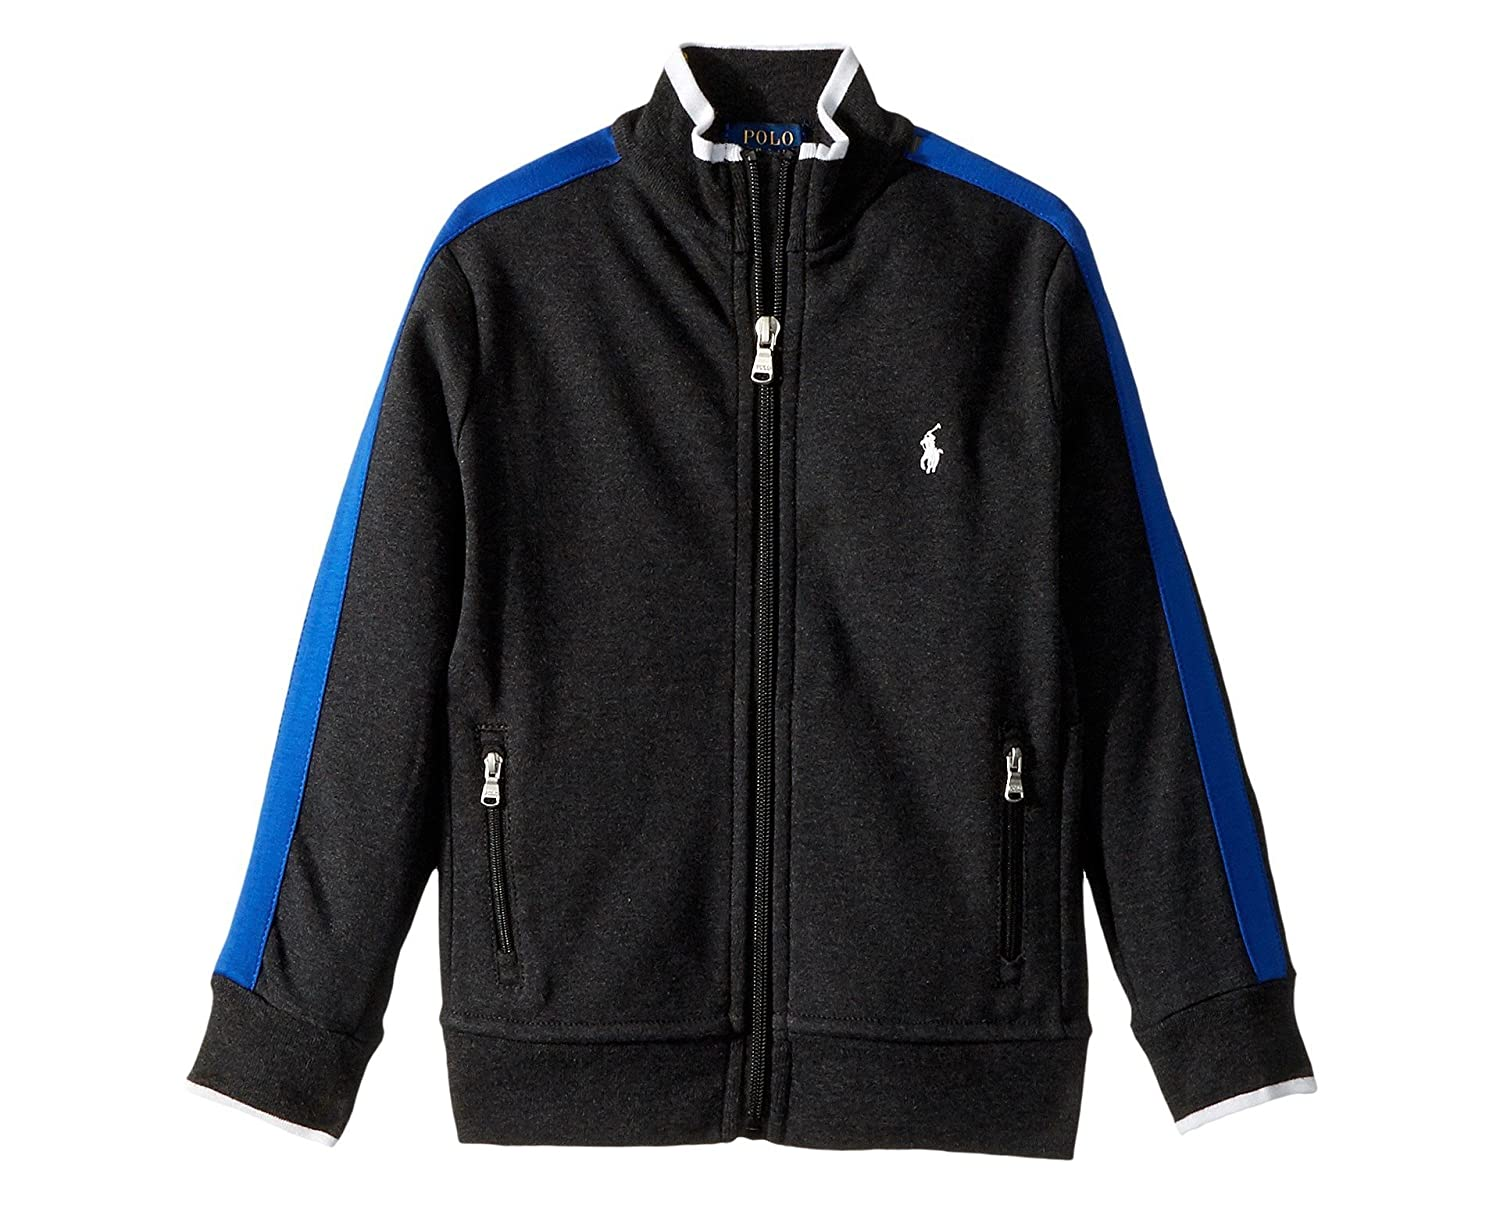 Polo Ralph Lauren Boys Cotton Track Jacket Small Dark Granite 8 yrs